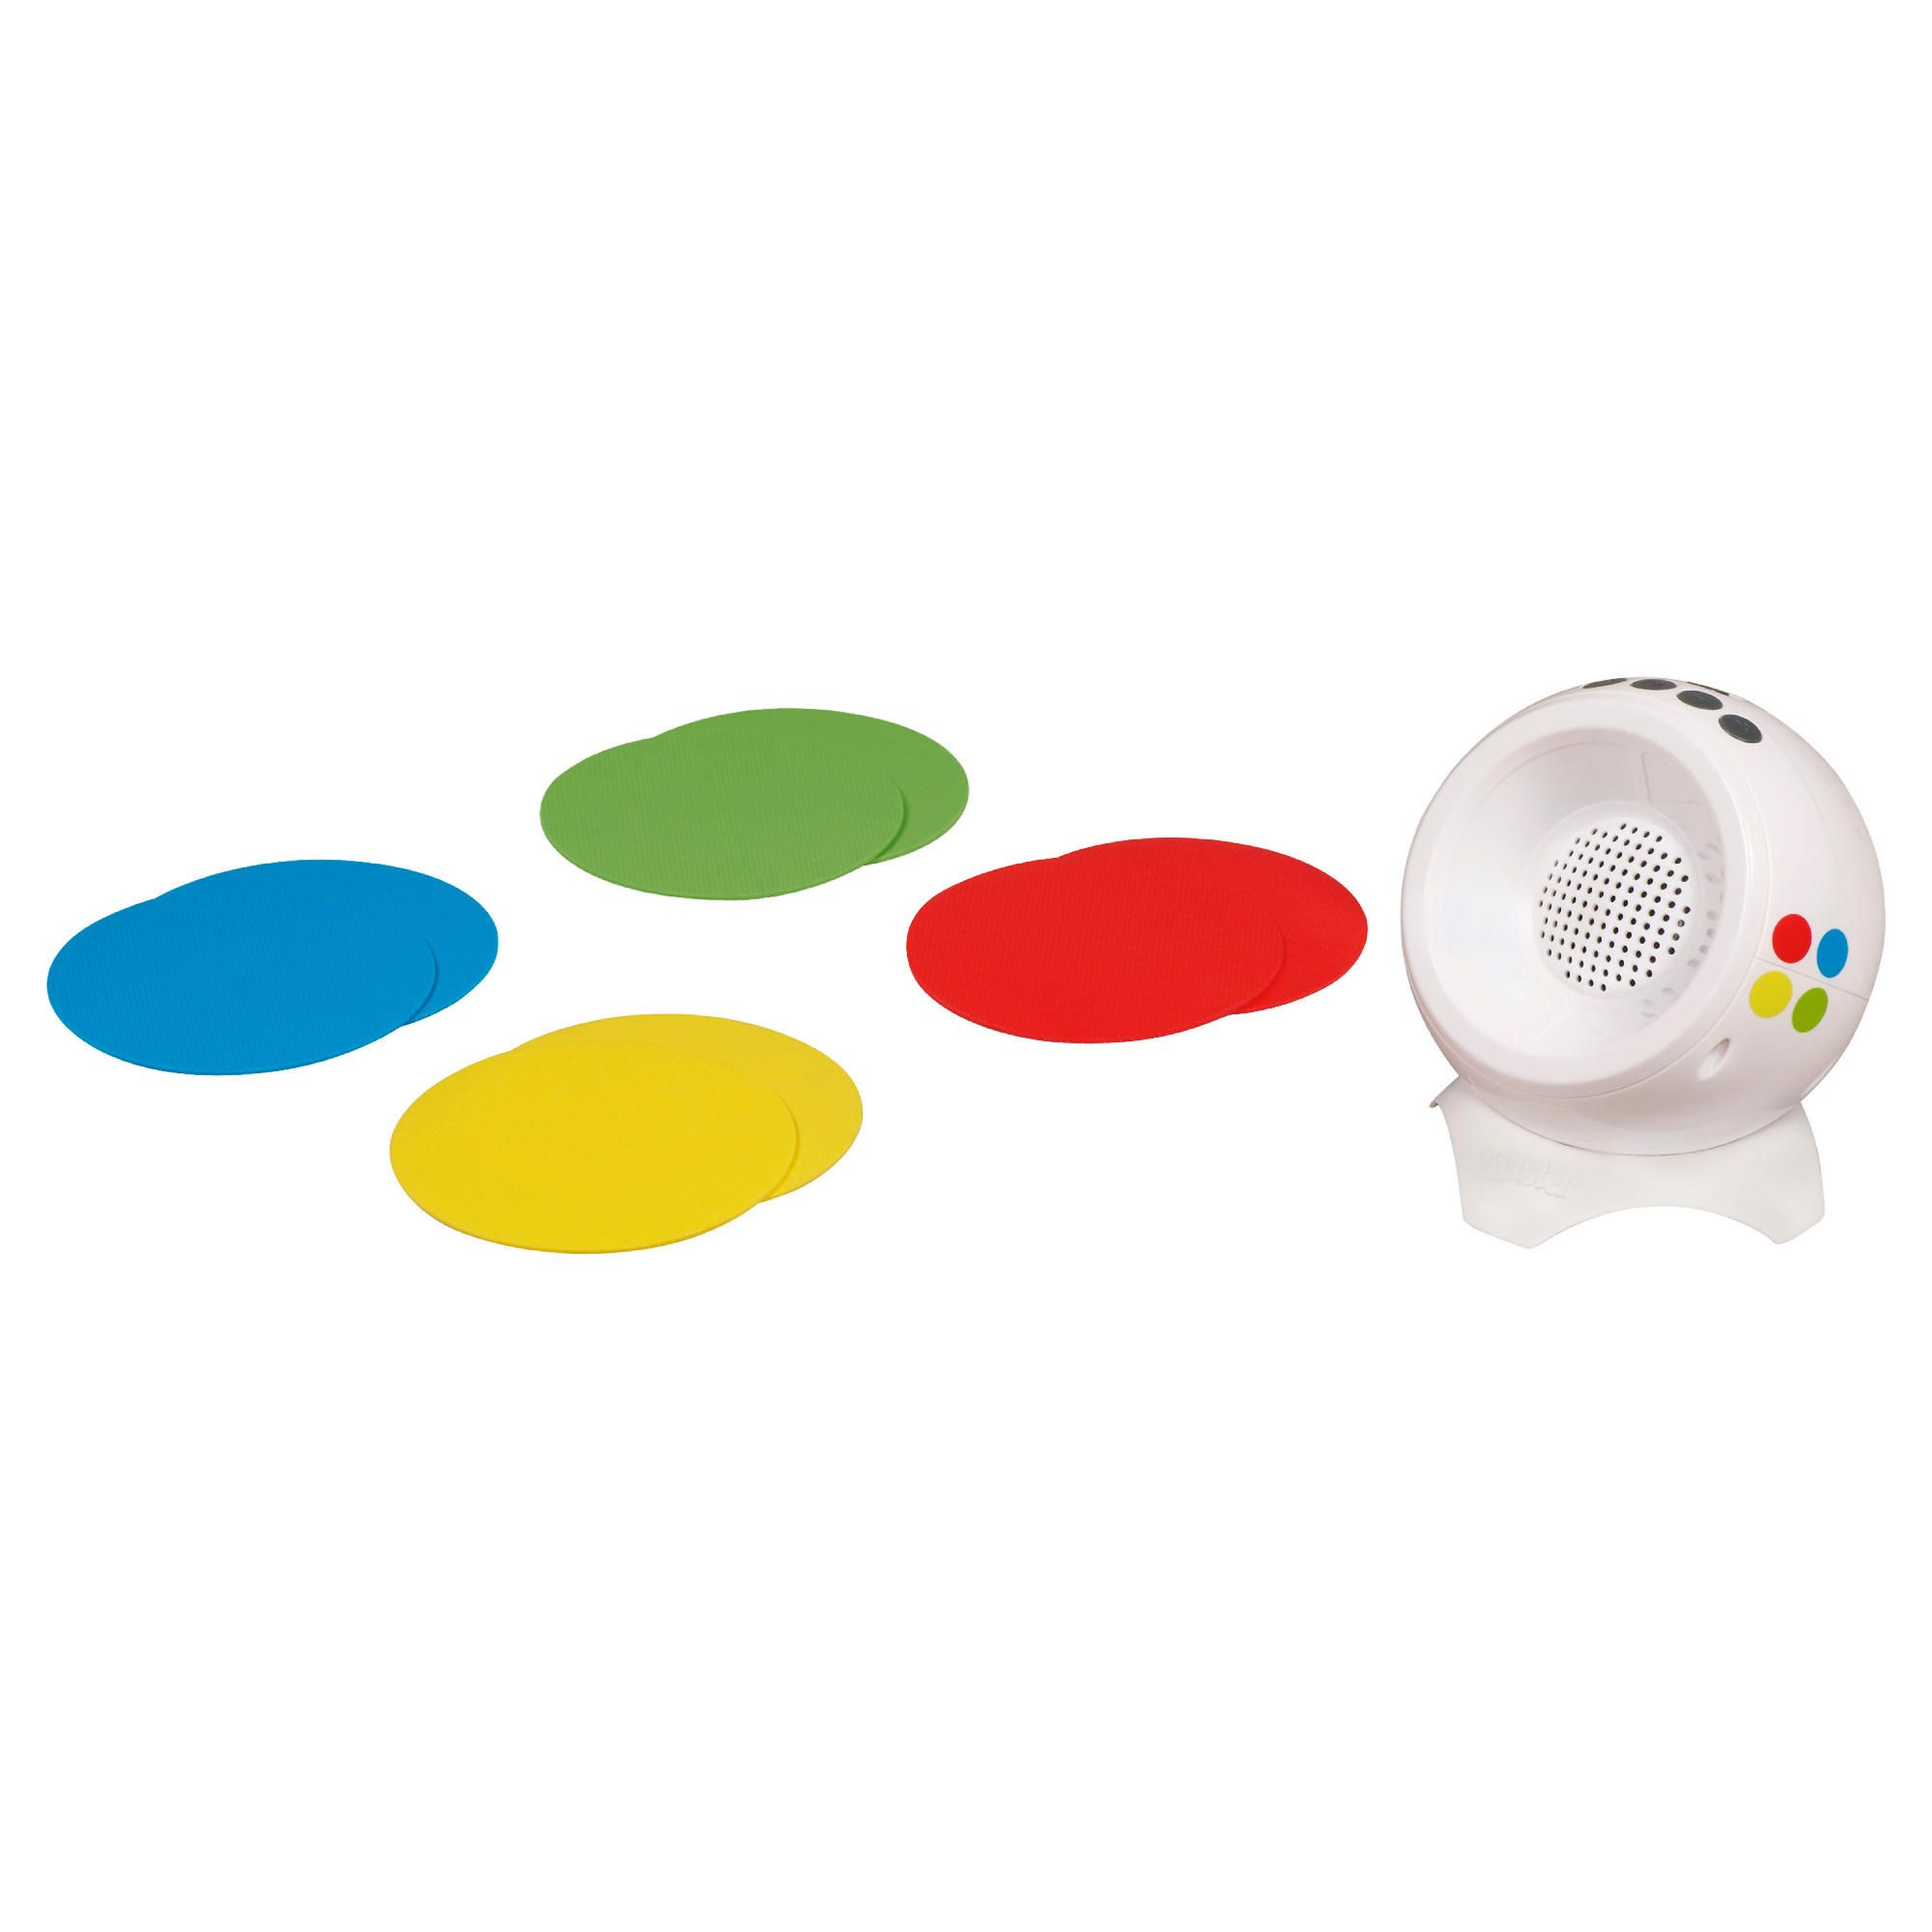 twister dance game how to play